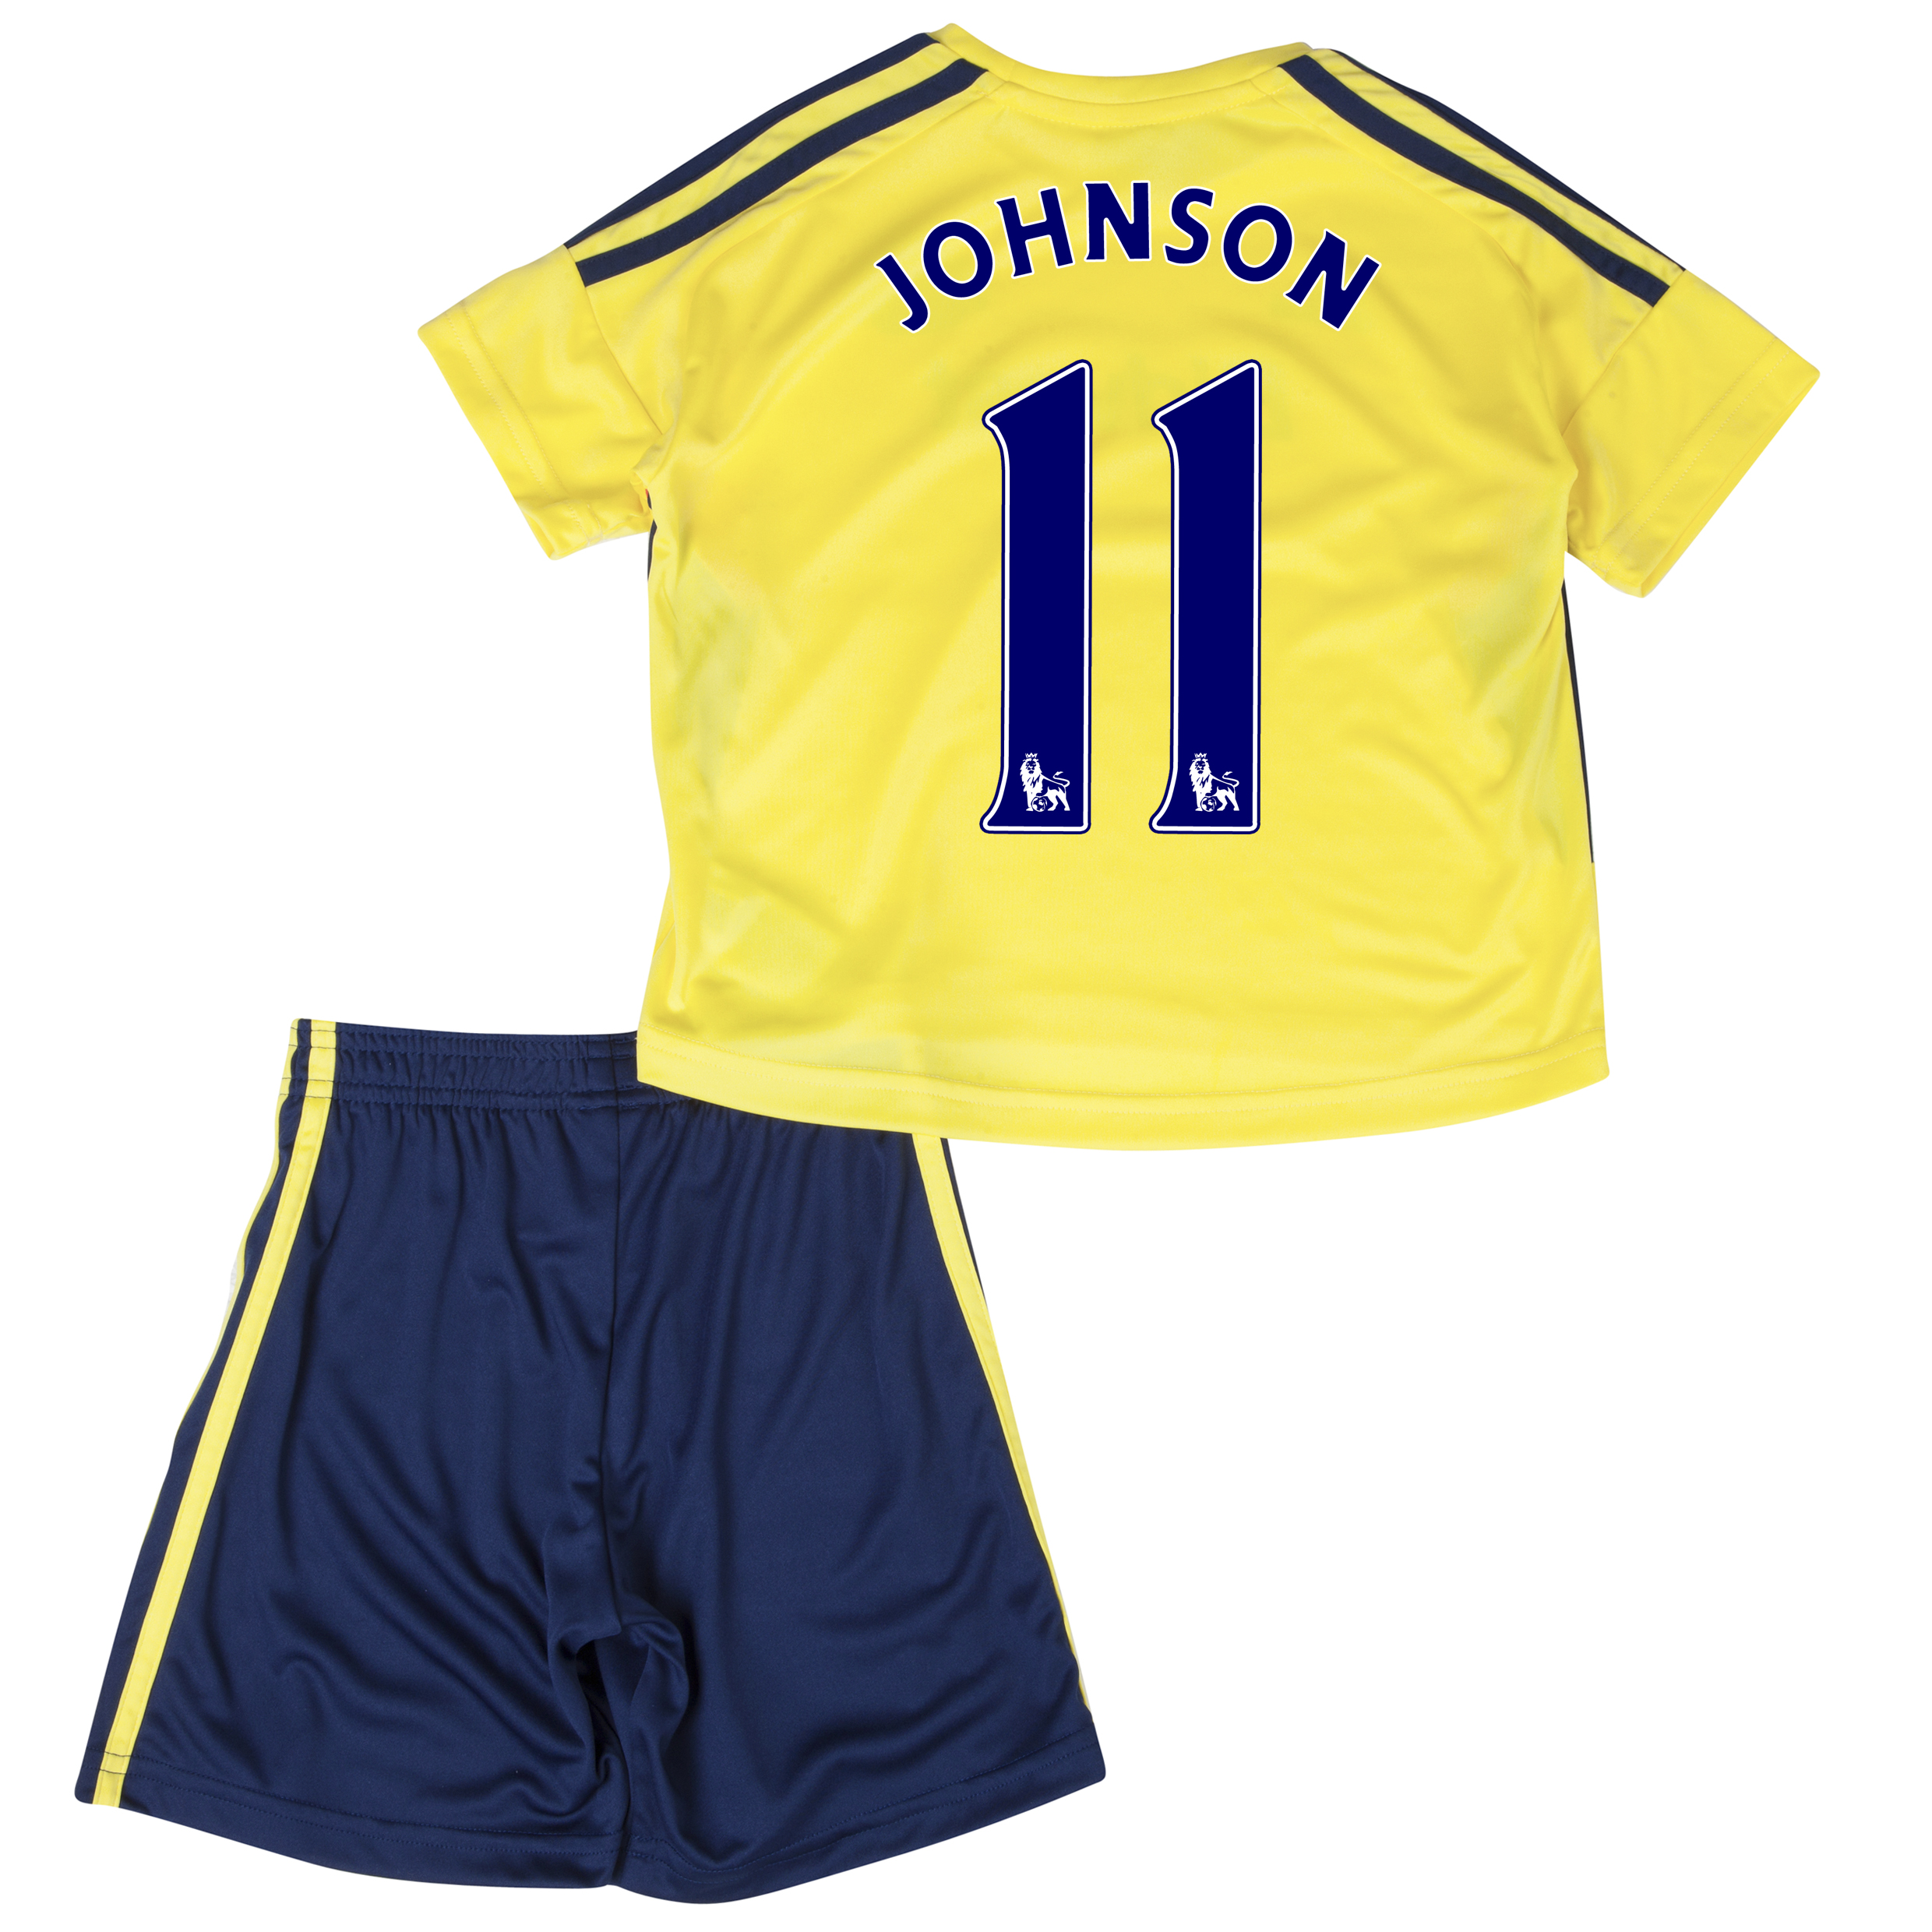 Sunderland Away Minikit 2013/14 - Infants with Johnson 11 printing